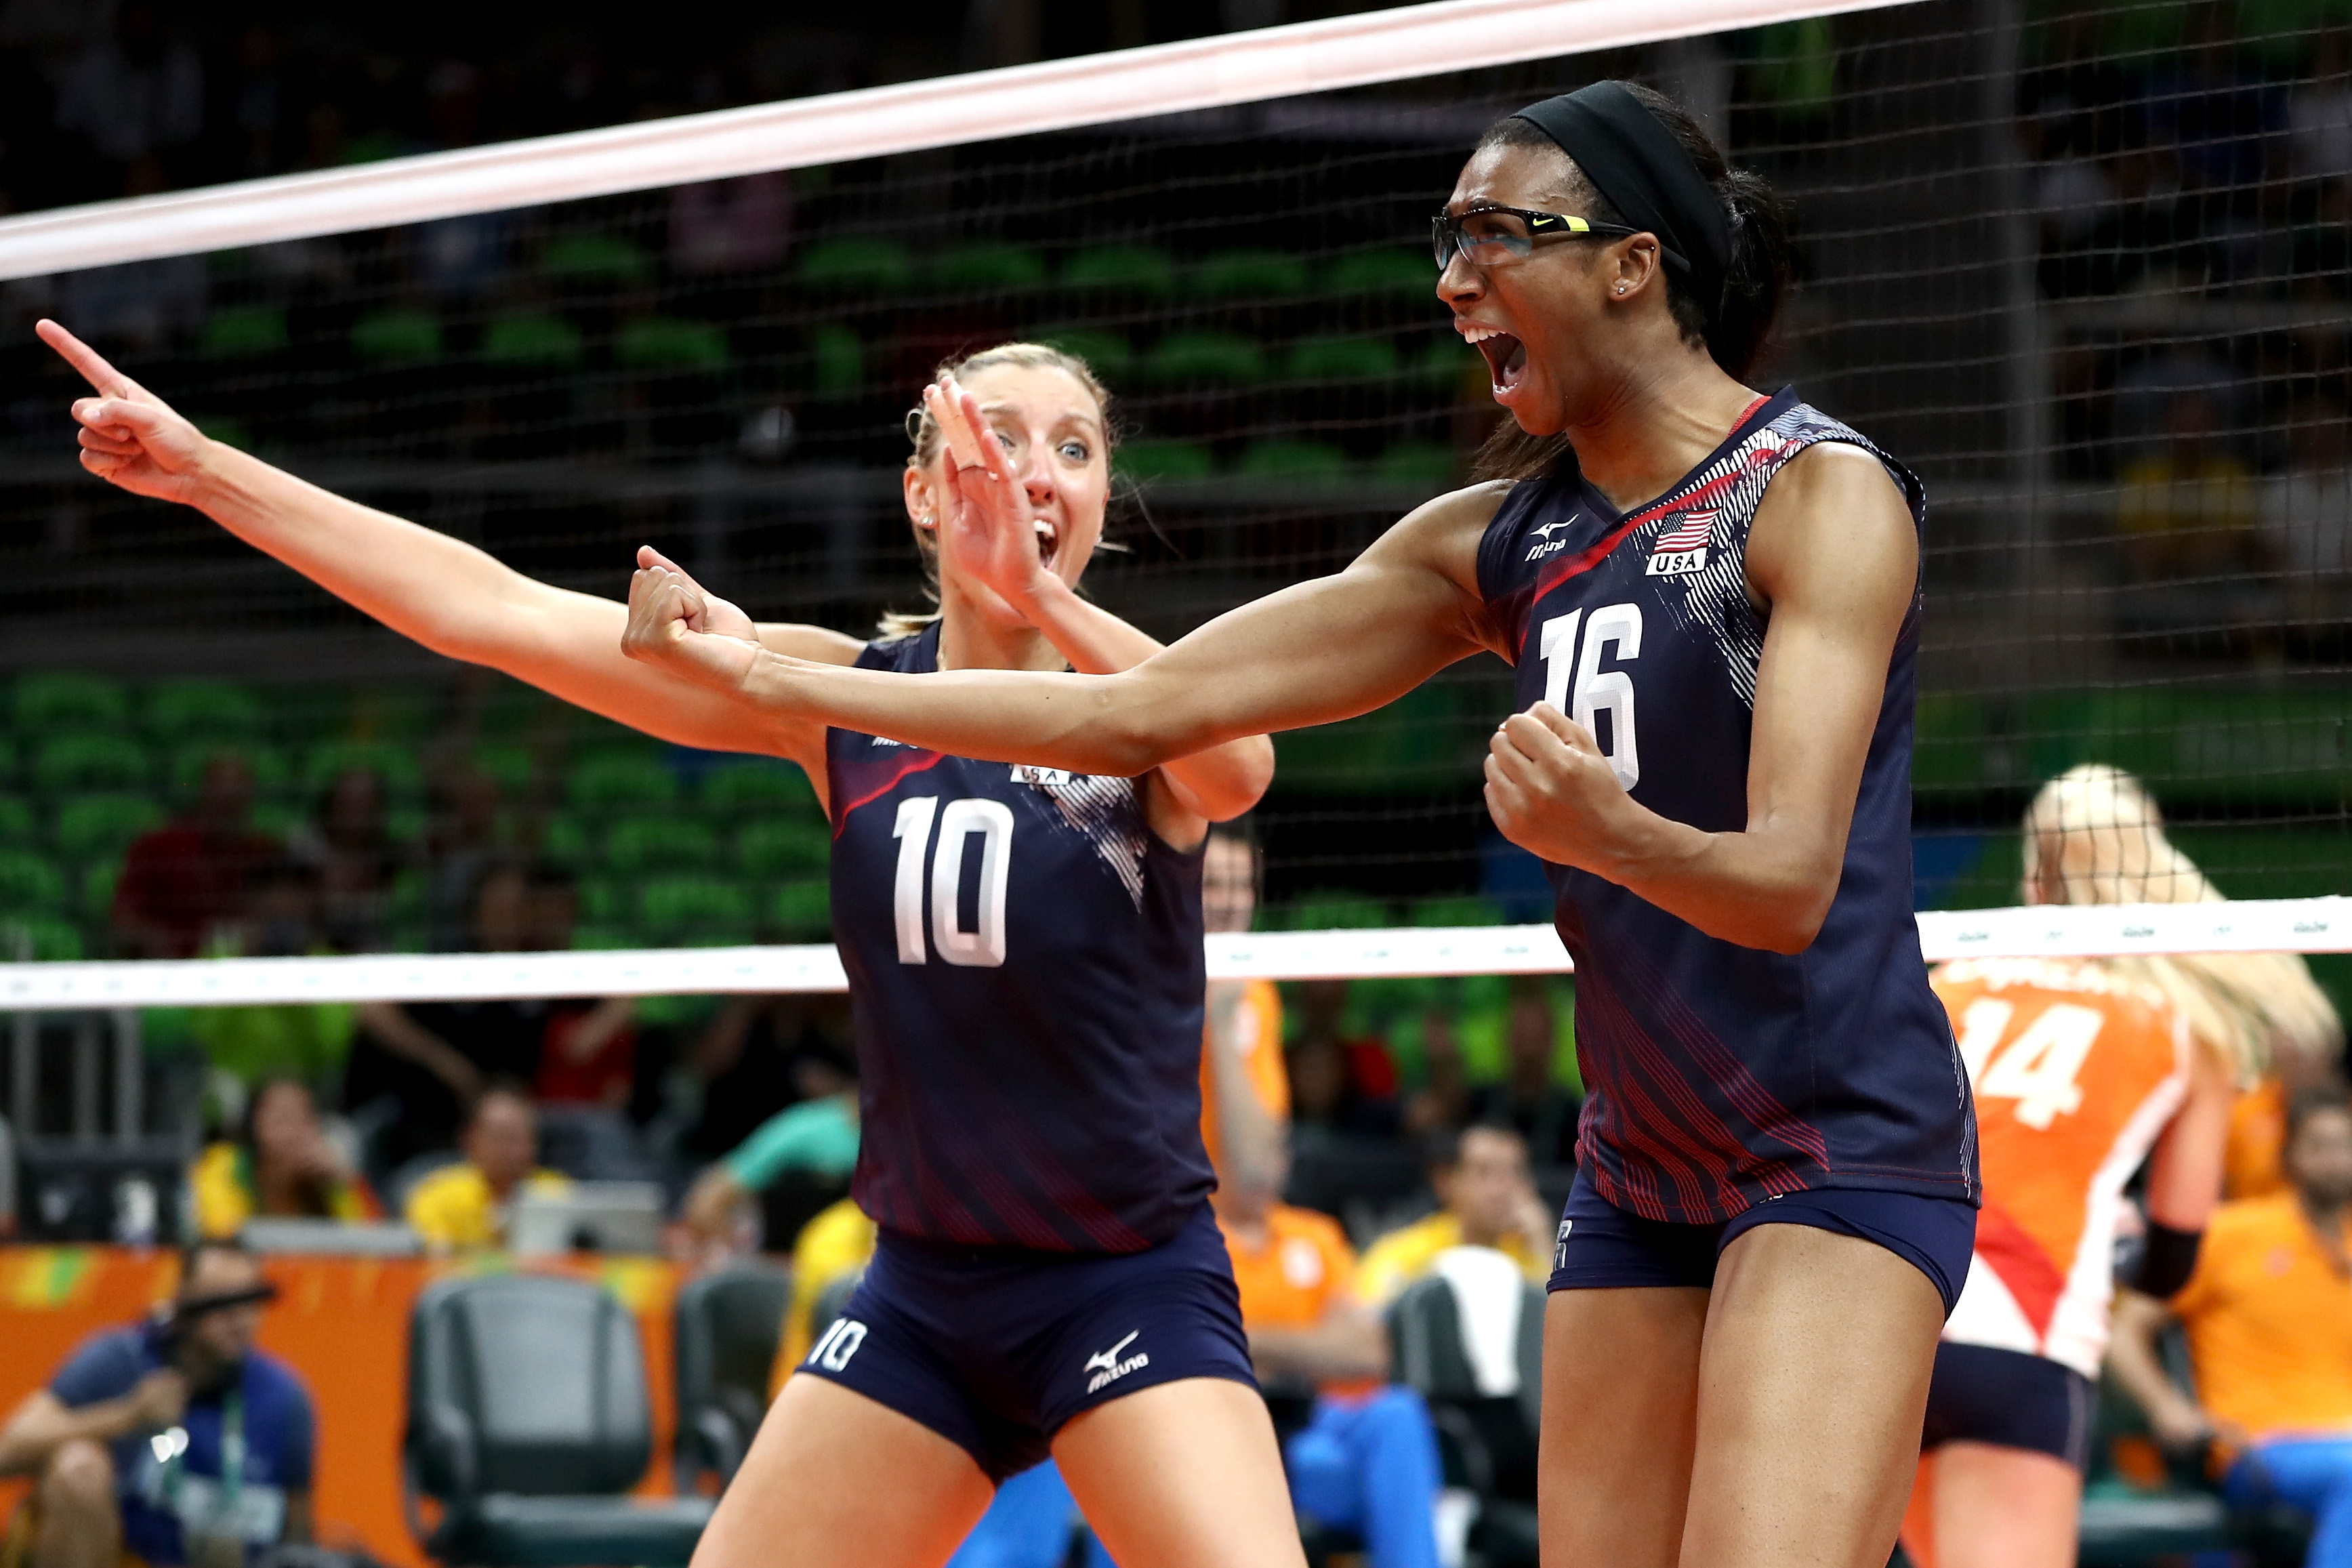 Jordan Larson, Foluke Akinradewo of United States celebrate winning match point during the Women's Bronze Medal Match between Netherlands and the United States on Day 15 of the Rio 2016 Olympic Games at the Maracanazinho on August 20, 2016 in Rio de Janeiro, Brazil.